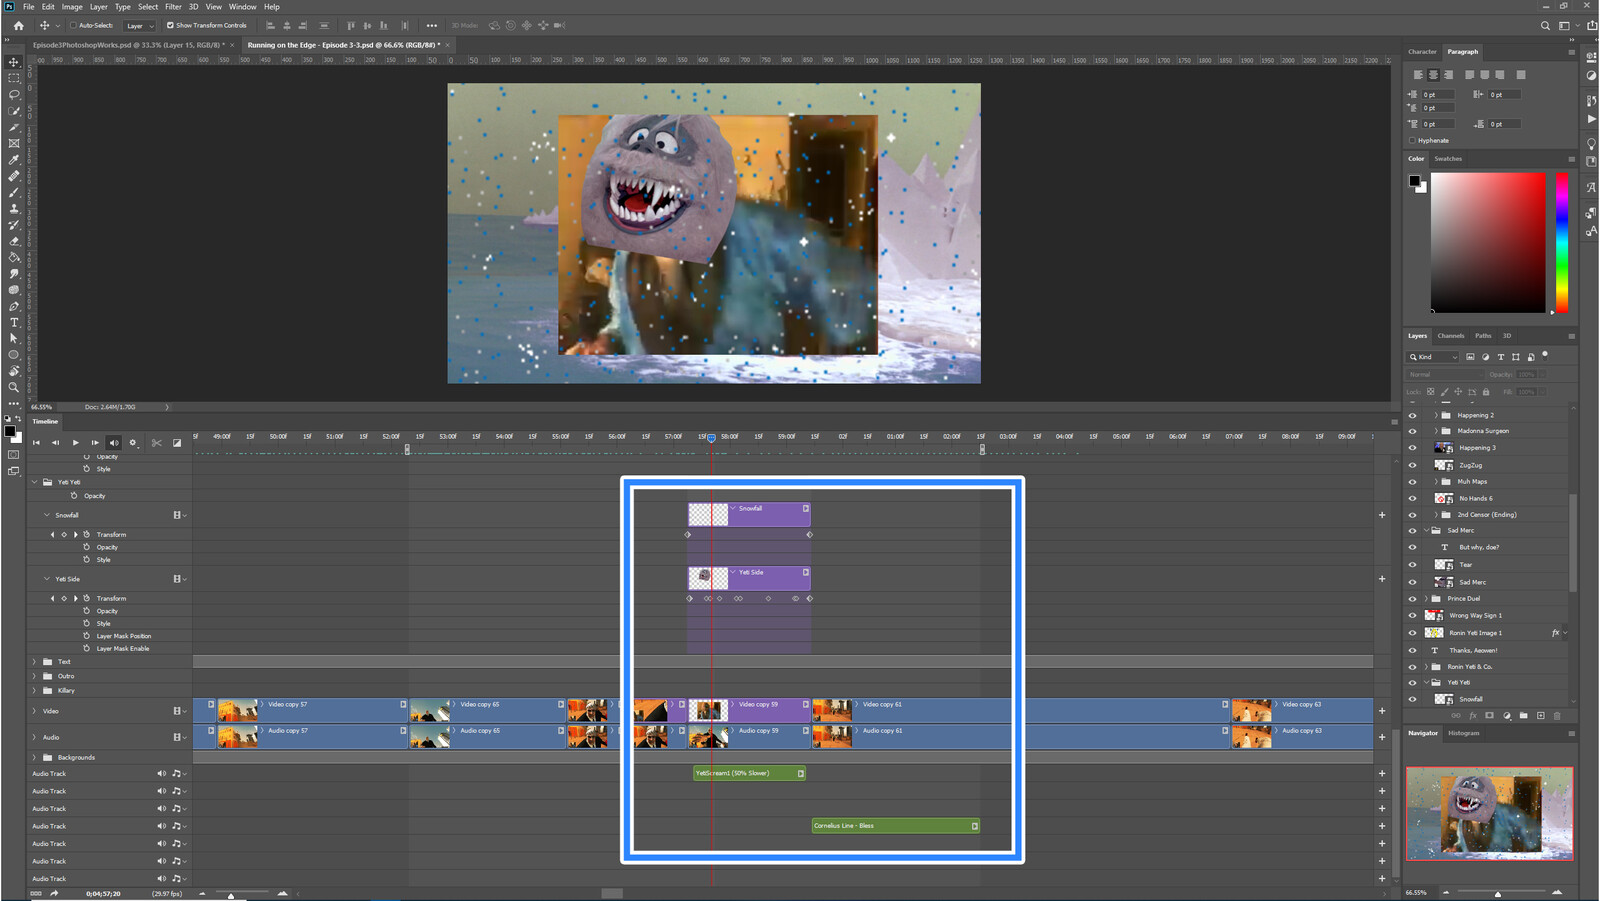 """The """"True Yeti"""" visual effect within Photoshop video editor"""